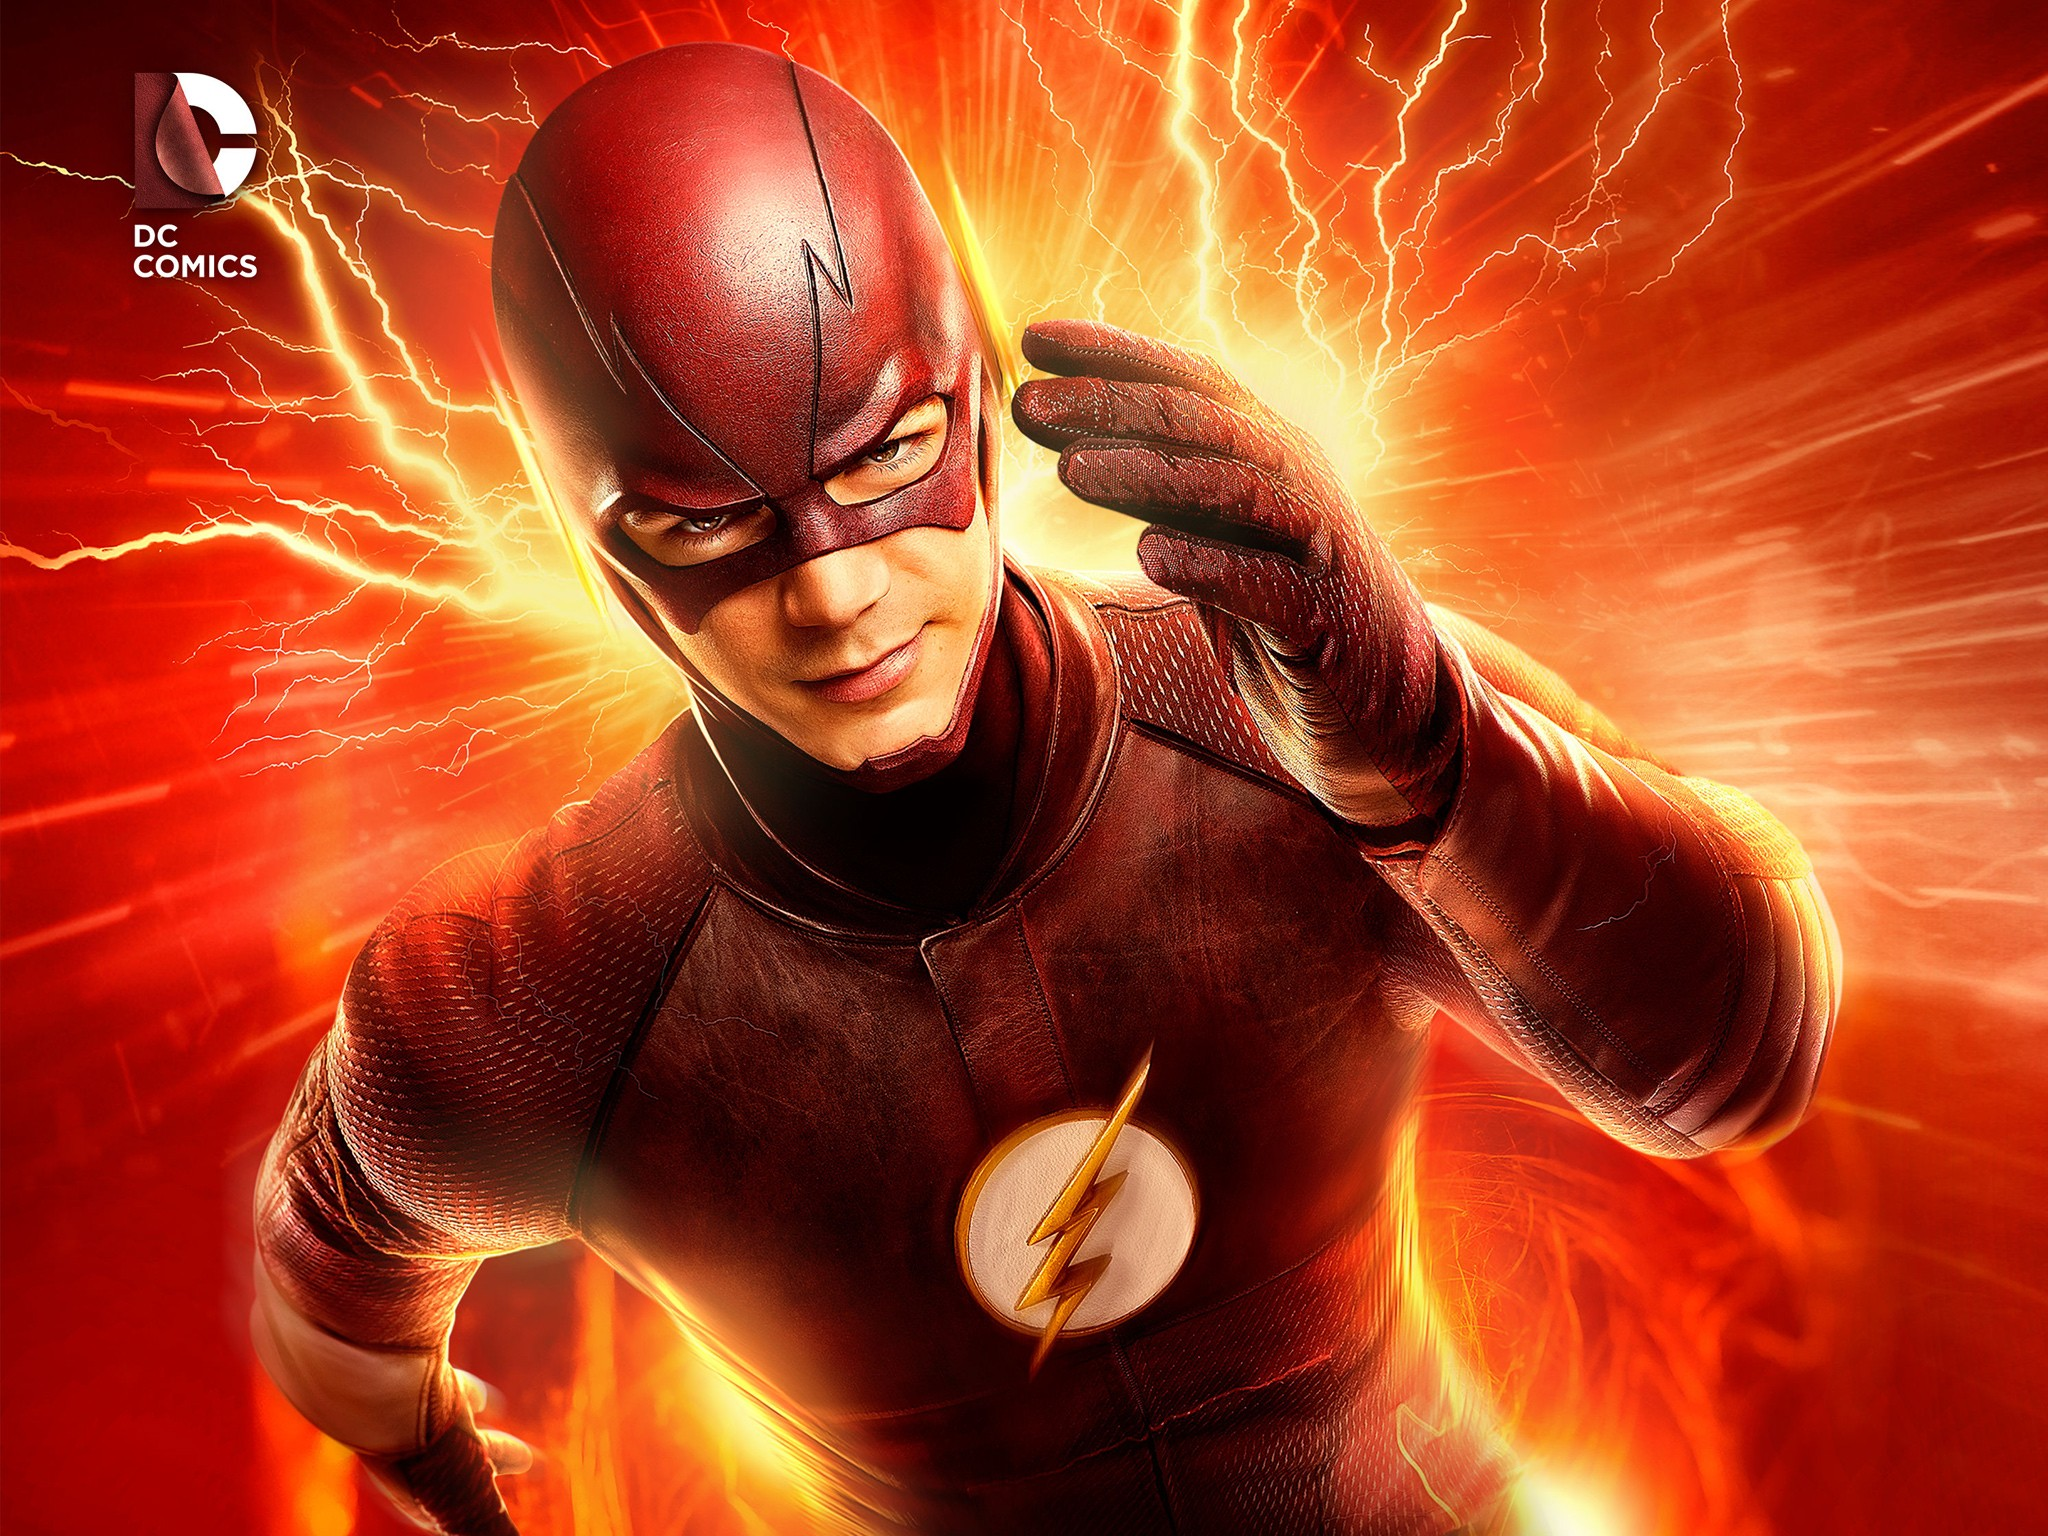 The Flash Wallpaper Iphone 5 Dc Comics The Flash Wallpapers Hd Wallpapers Id 18467